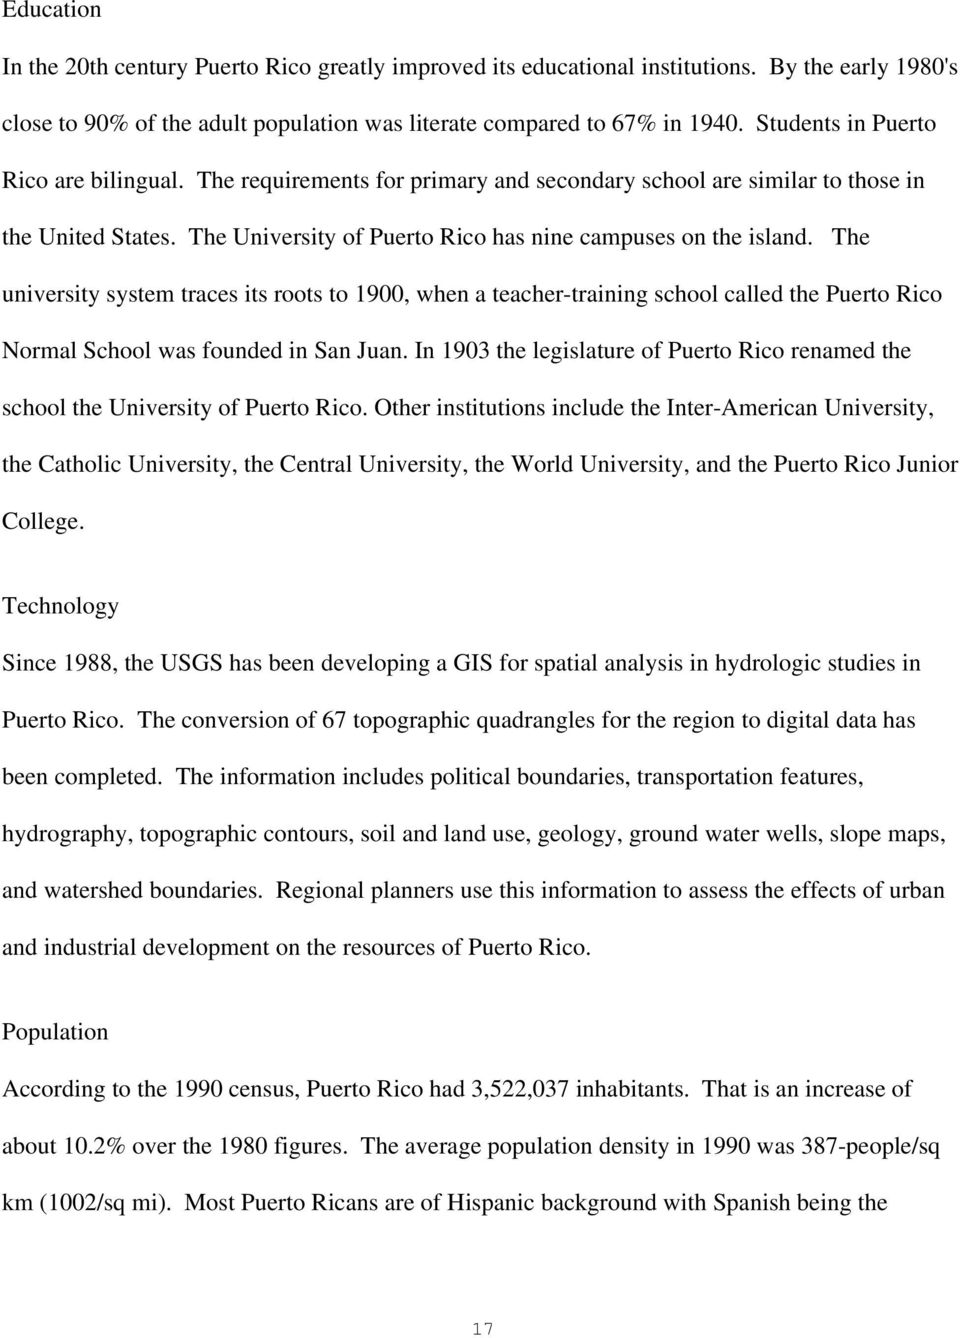 The university system traces its roots to 1900, when a teacher-training school called the Puerto Rico Normal School was founded in San Juan.